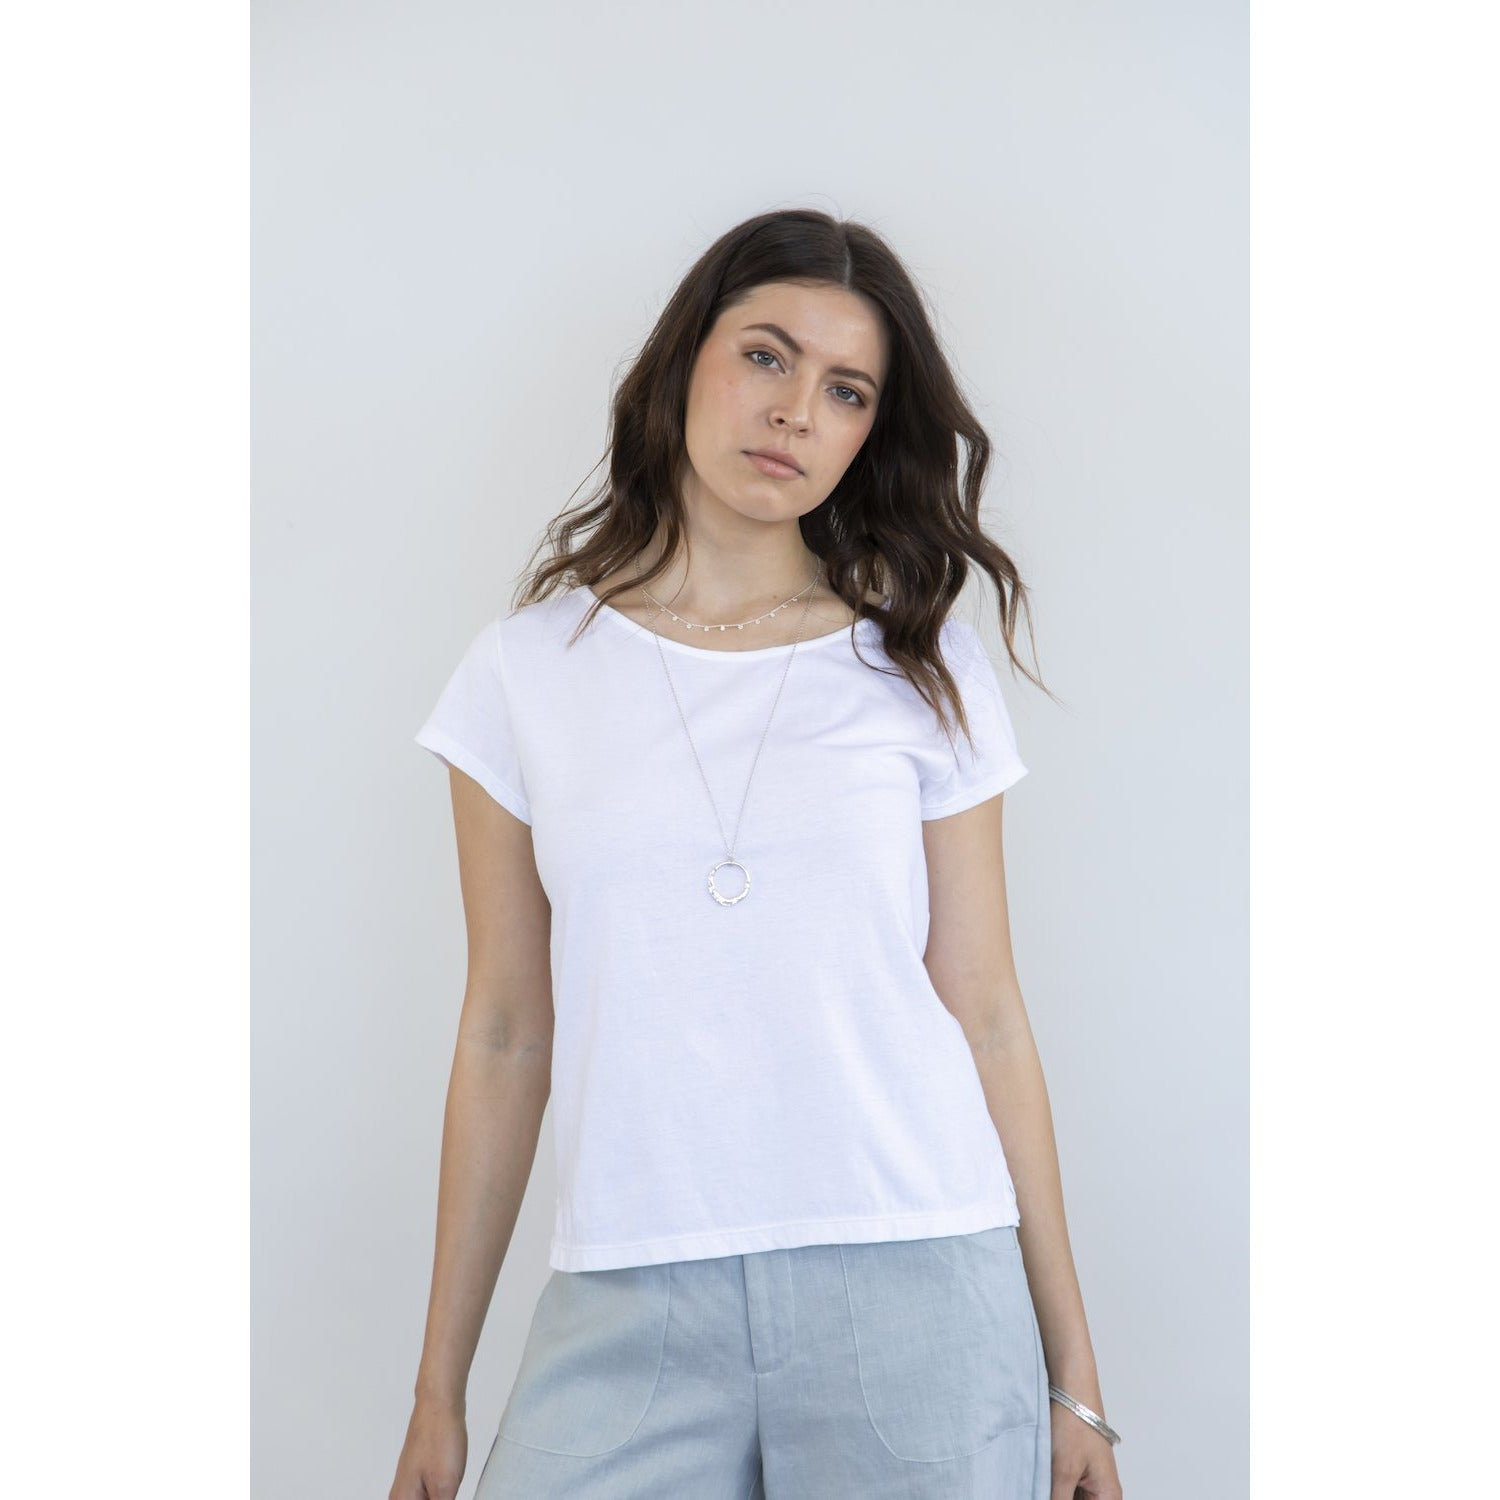 charley vella white cotton tee top